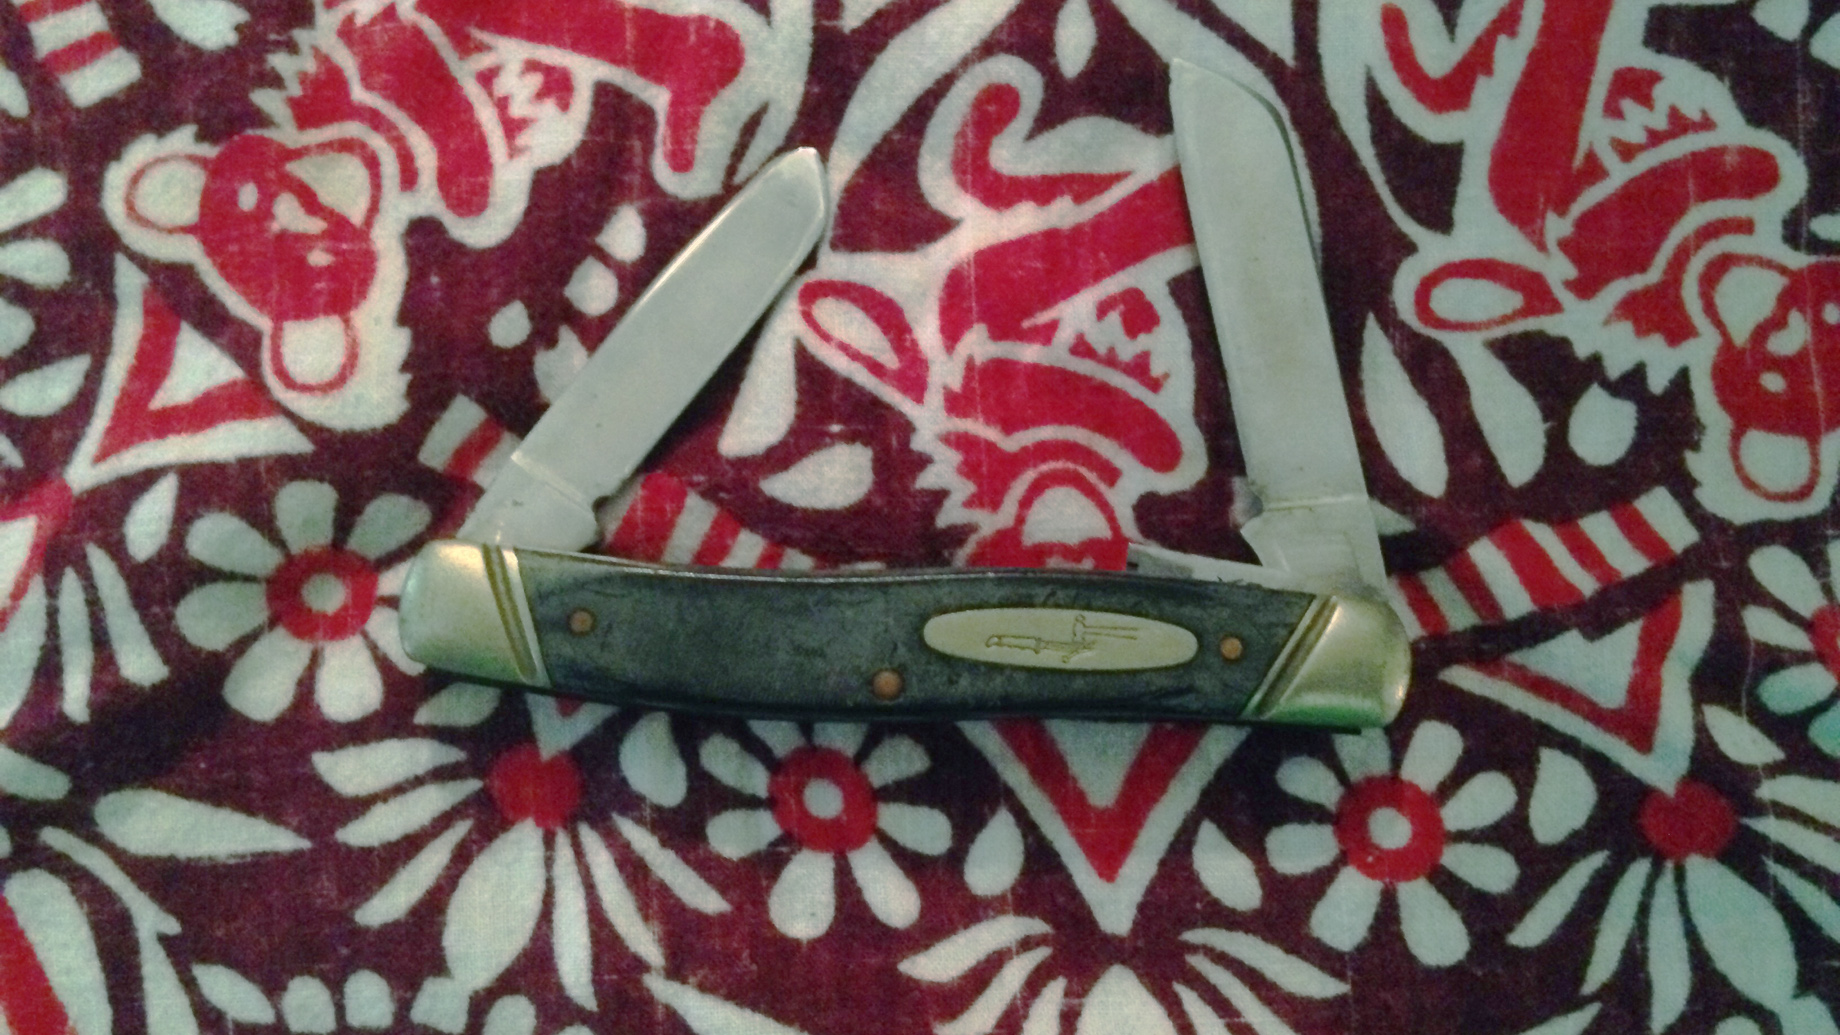 Grandfathers Pocket Knife